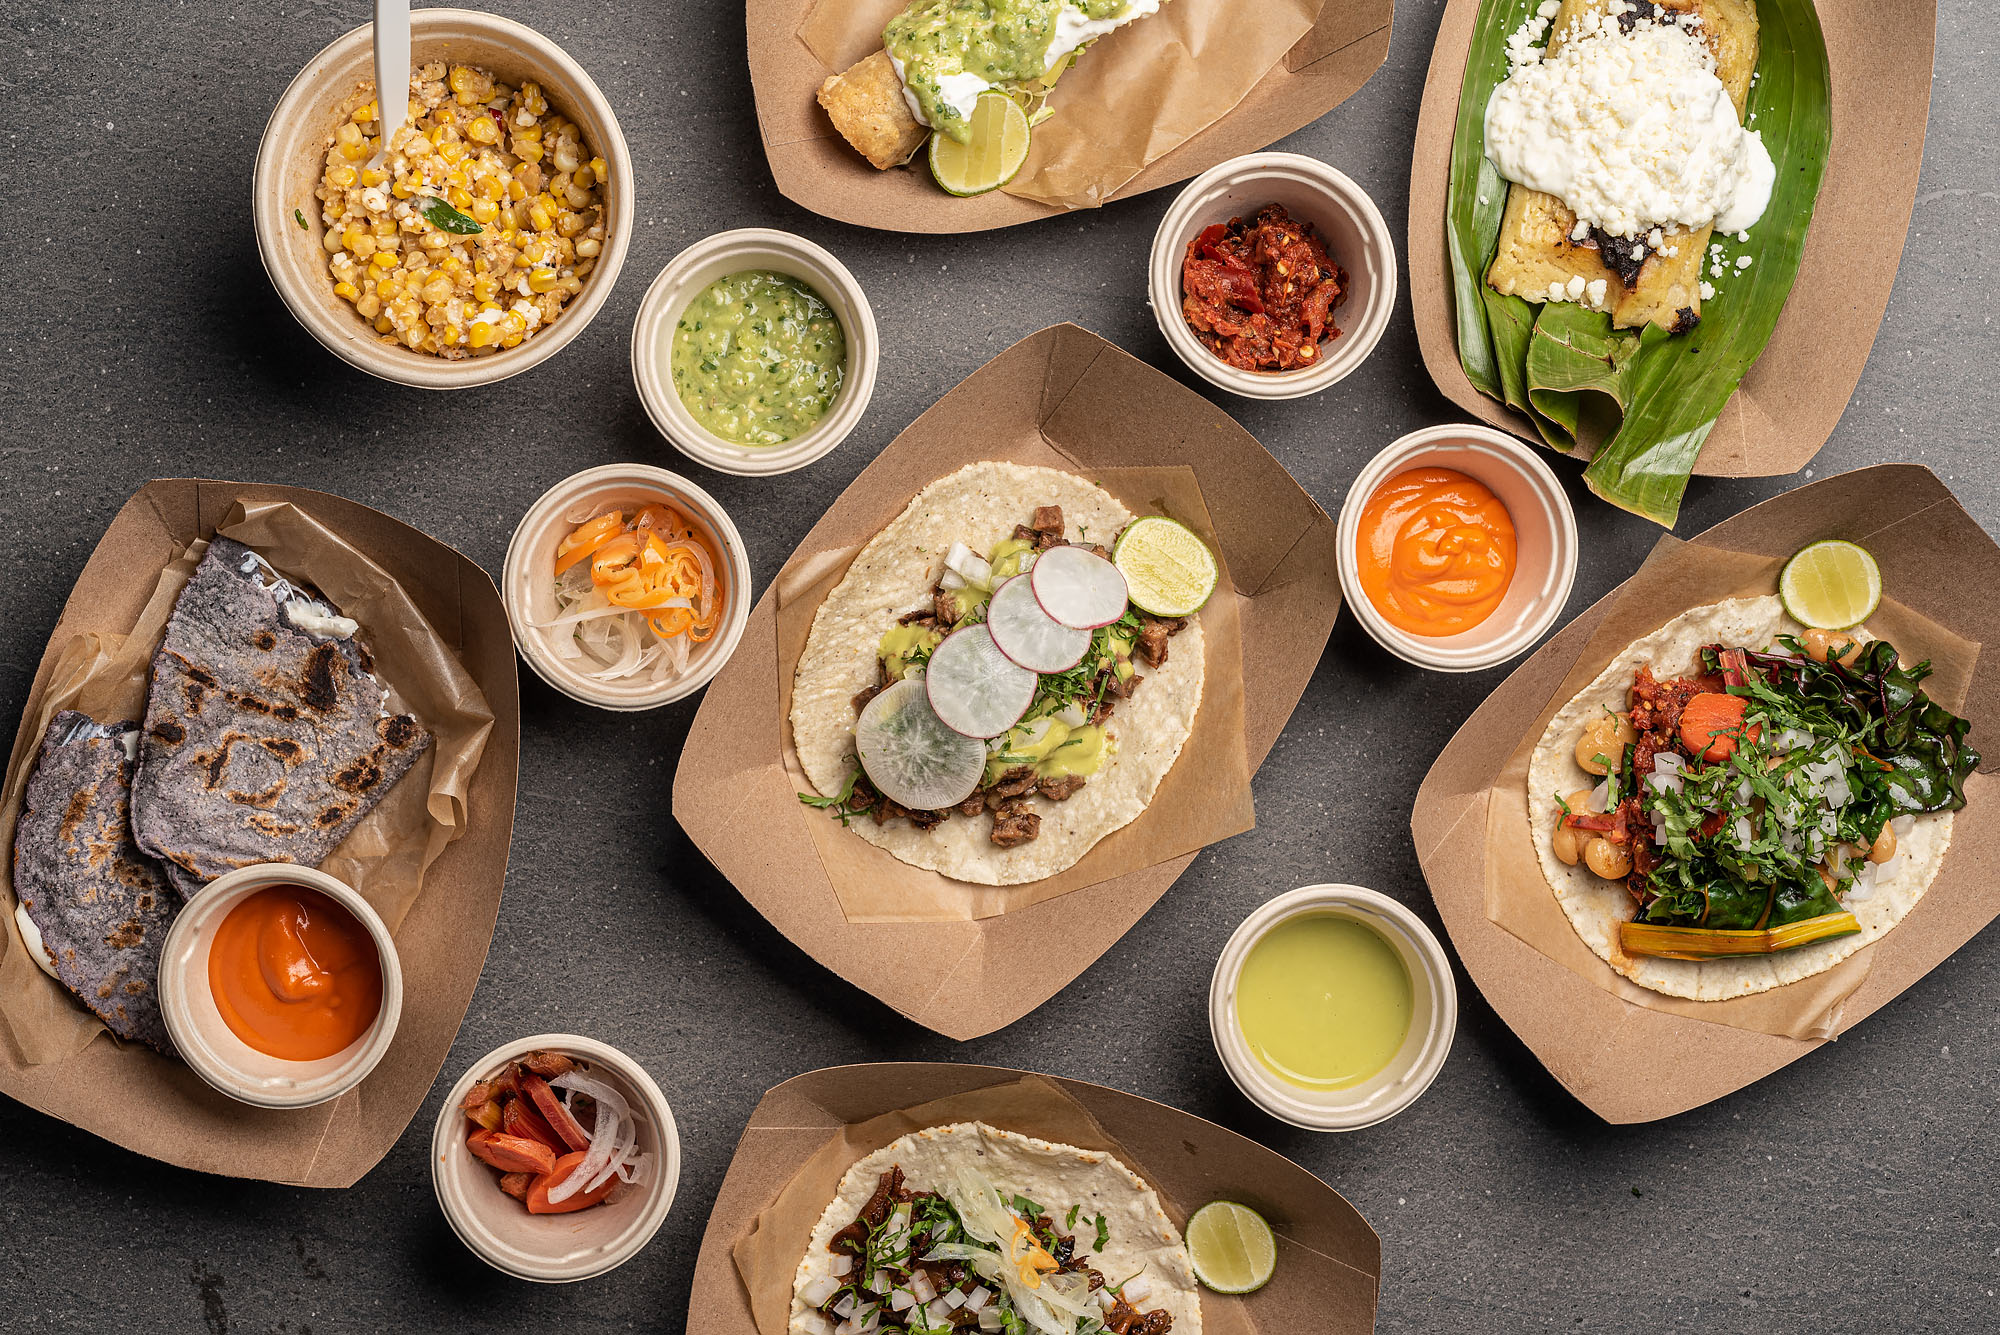 Tacos and sides from Enrique Olvera's Ditroit in Arts District.